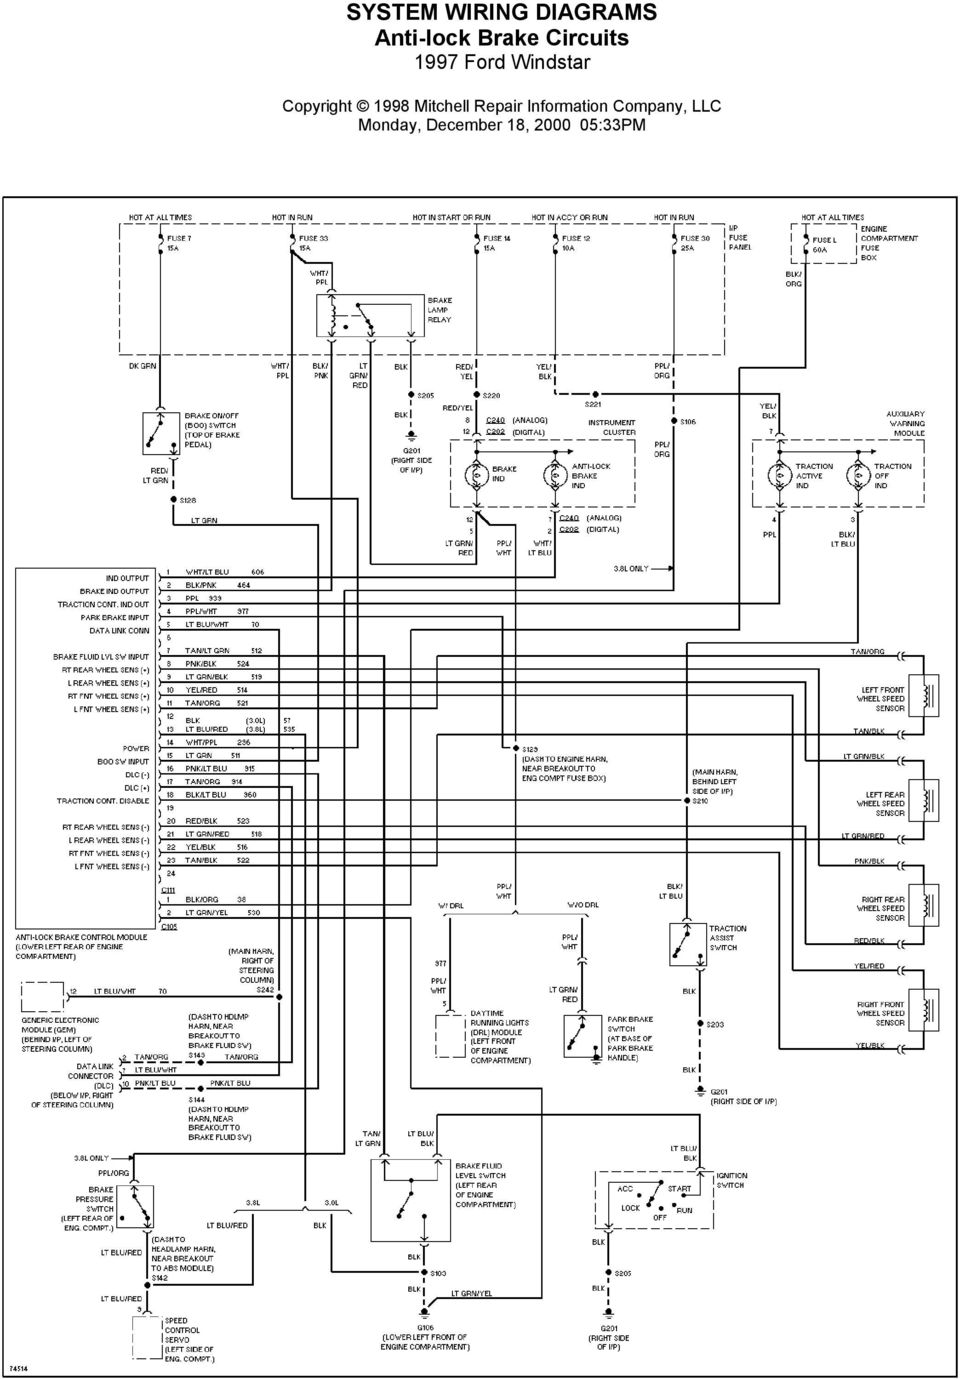 system wiring diagrams air conditioning circuits 1997 ford